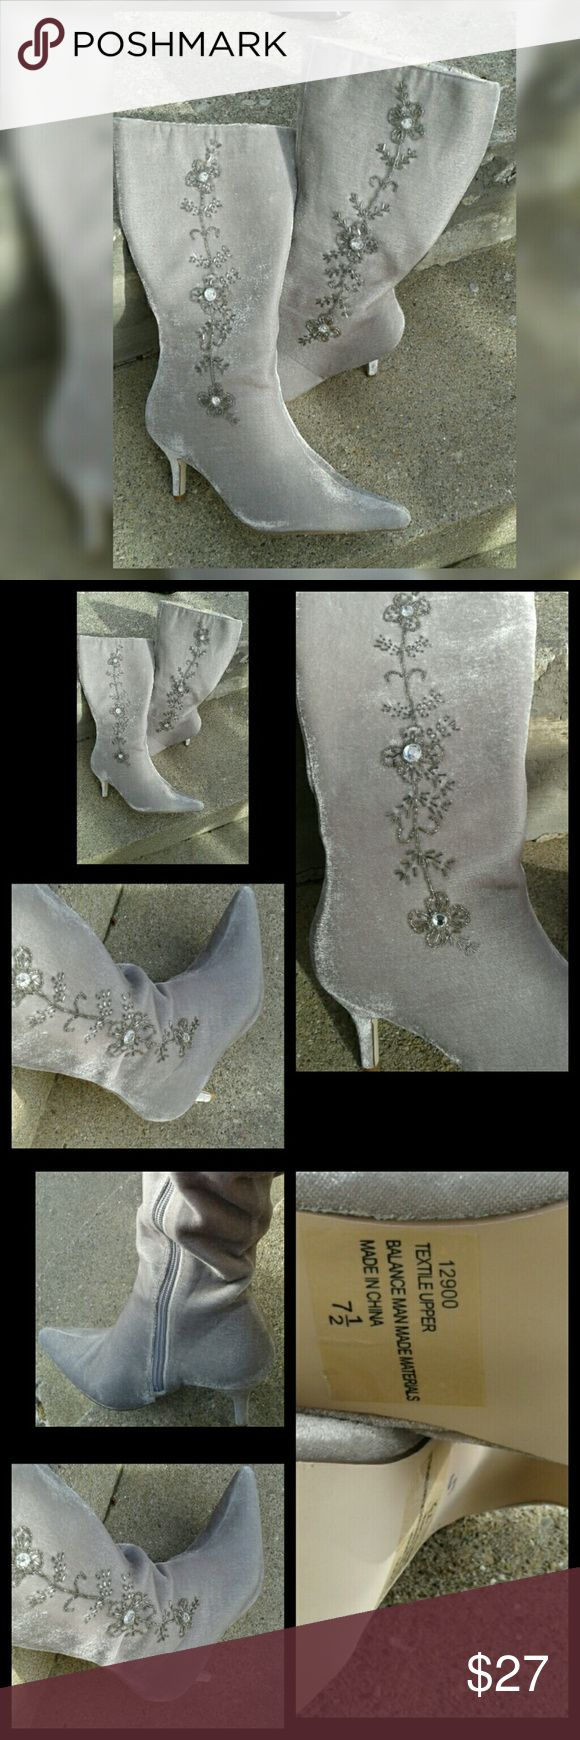 "Velvet Embroidered Pointy Toe Boot New no box! Simply Gorgeous boots! Gray Velvet with embroidery and rhinestones! 3"" heel, pointy toe. SIZE 7.5. overall height of boot is 14.5 inches. Elastic at top for a little extra stretch. Top measures 7 inches elastic may allow for an extra inch. Ankle measures exactly 4.5 inches. Full side zip. These are in new unworn vintage condition. No stains but the do smell like perfume, from previous owners storage.  Questions & Offers welcomed here! Newport…"